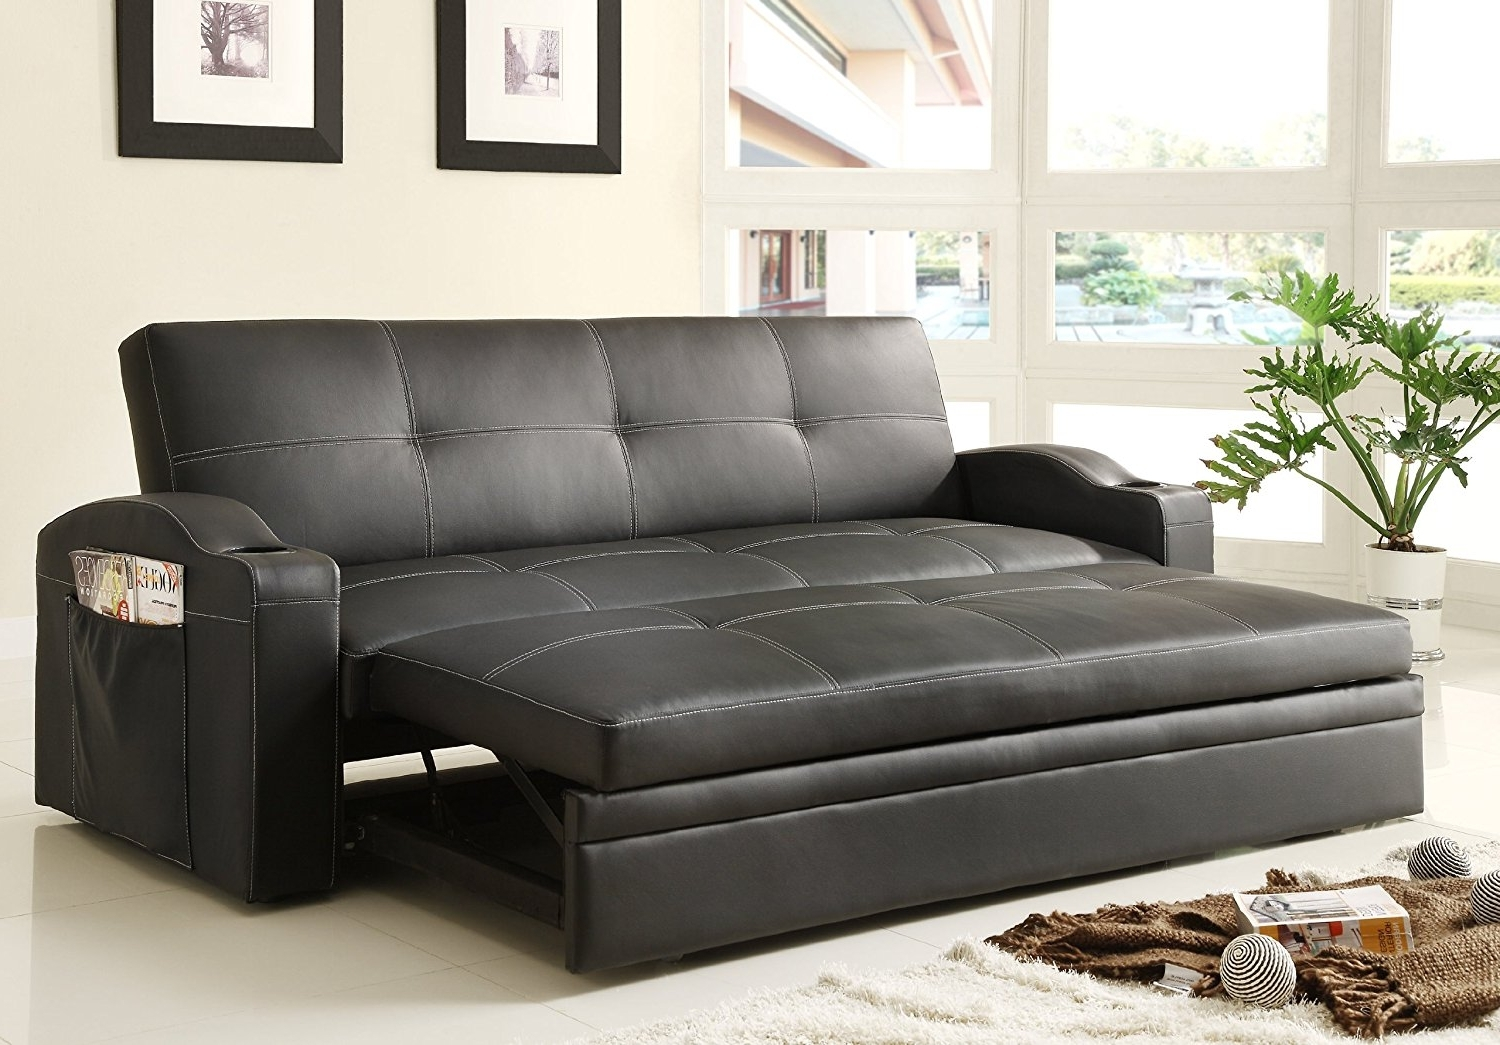 Convertible Sofa Design Ideas — Cabinets, Beds, Sofas And For Favorite Convertible Sofas (View 3 of 20)